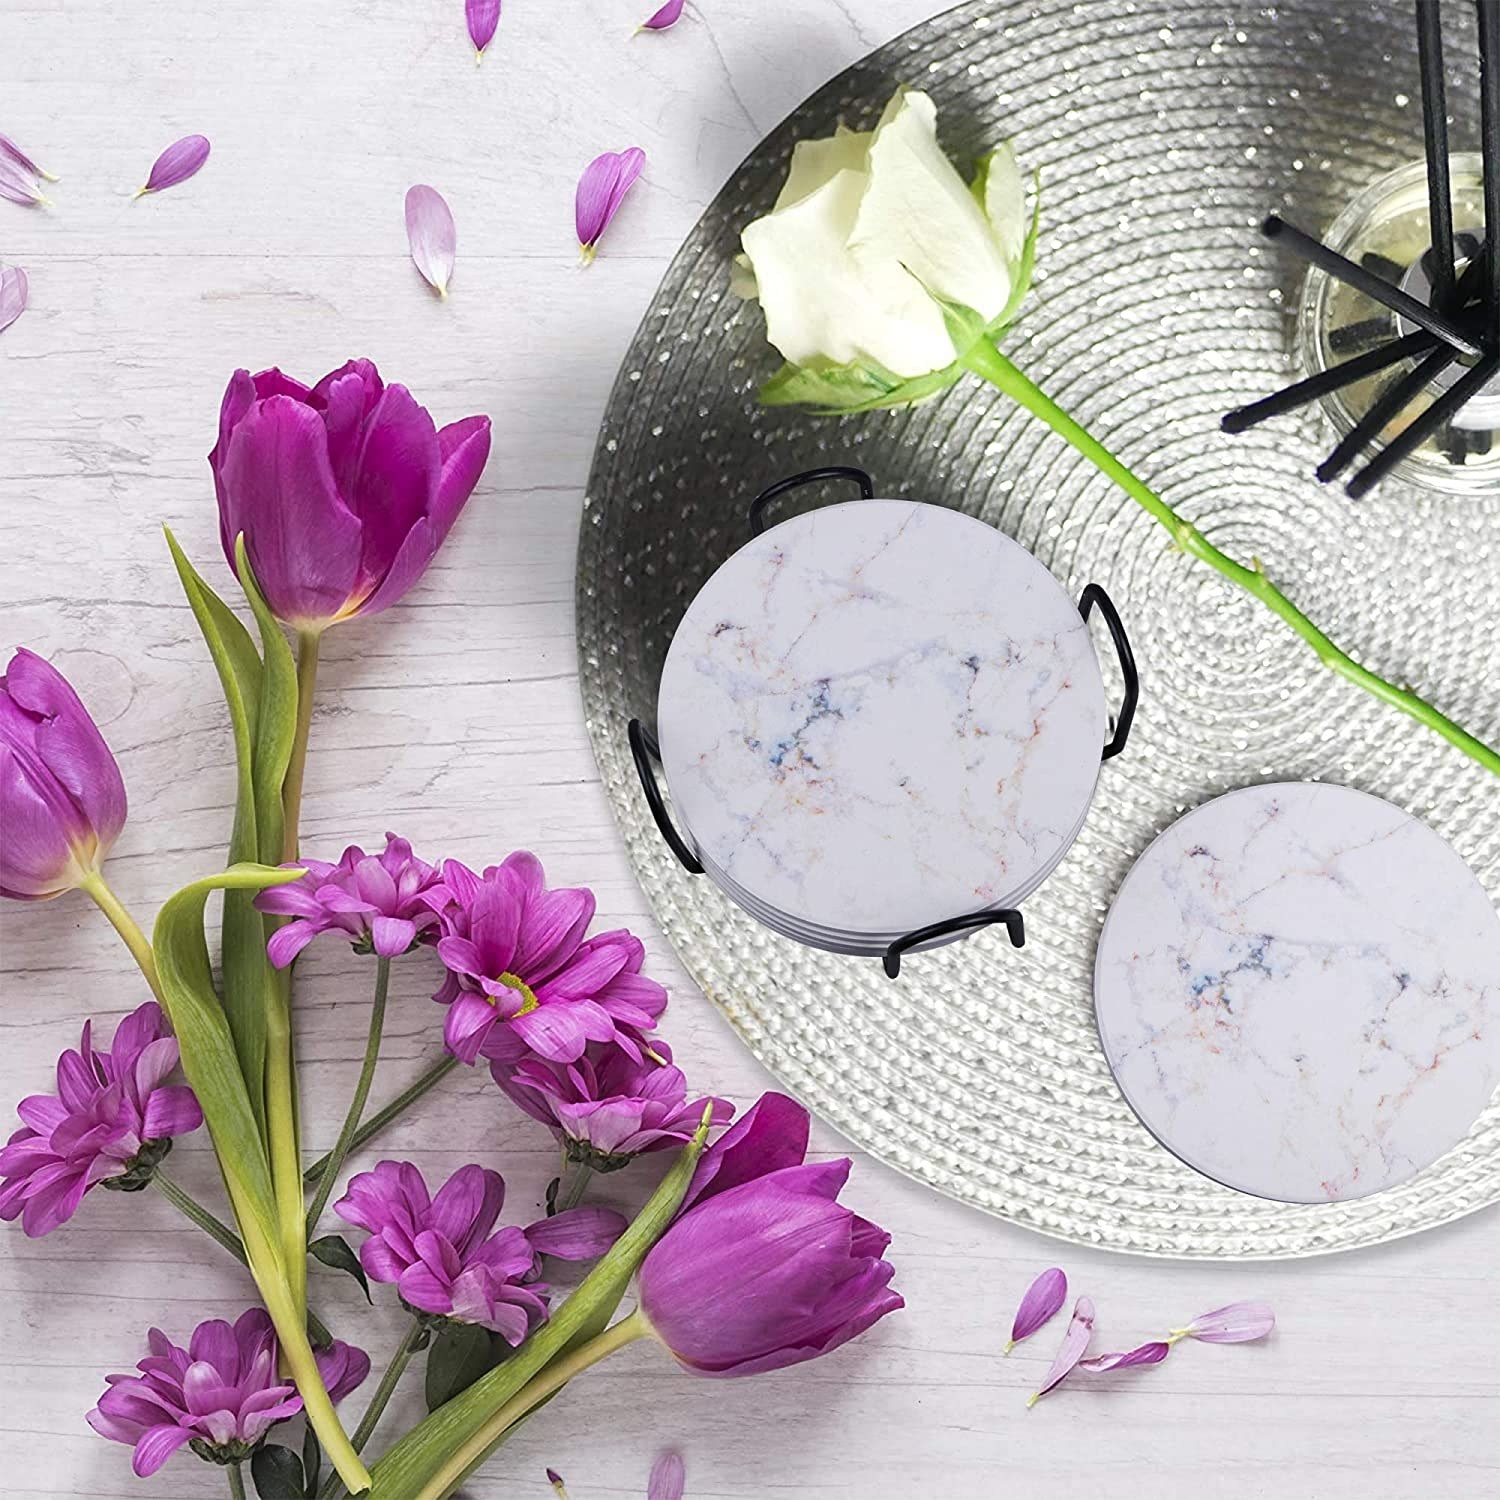 tabletop with flowers and the marbelized looking stone coasters